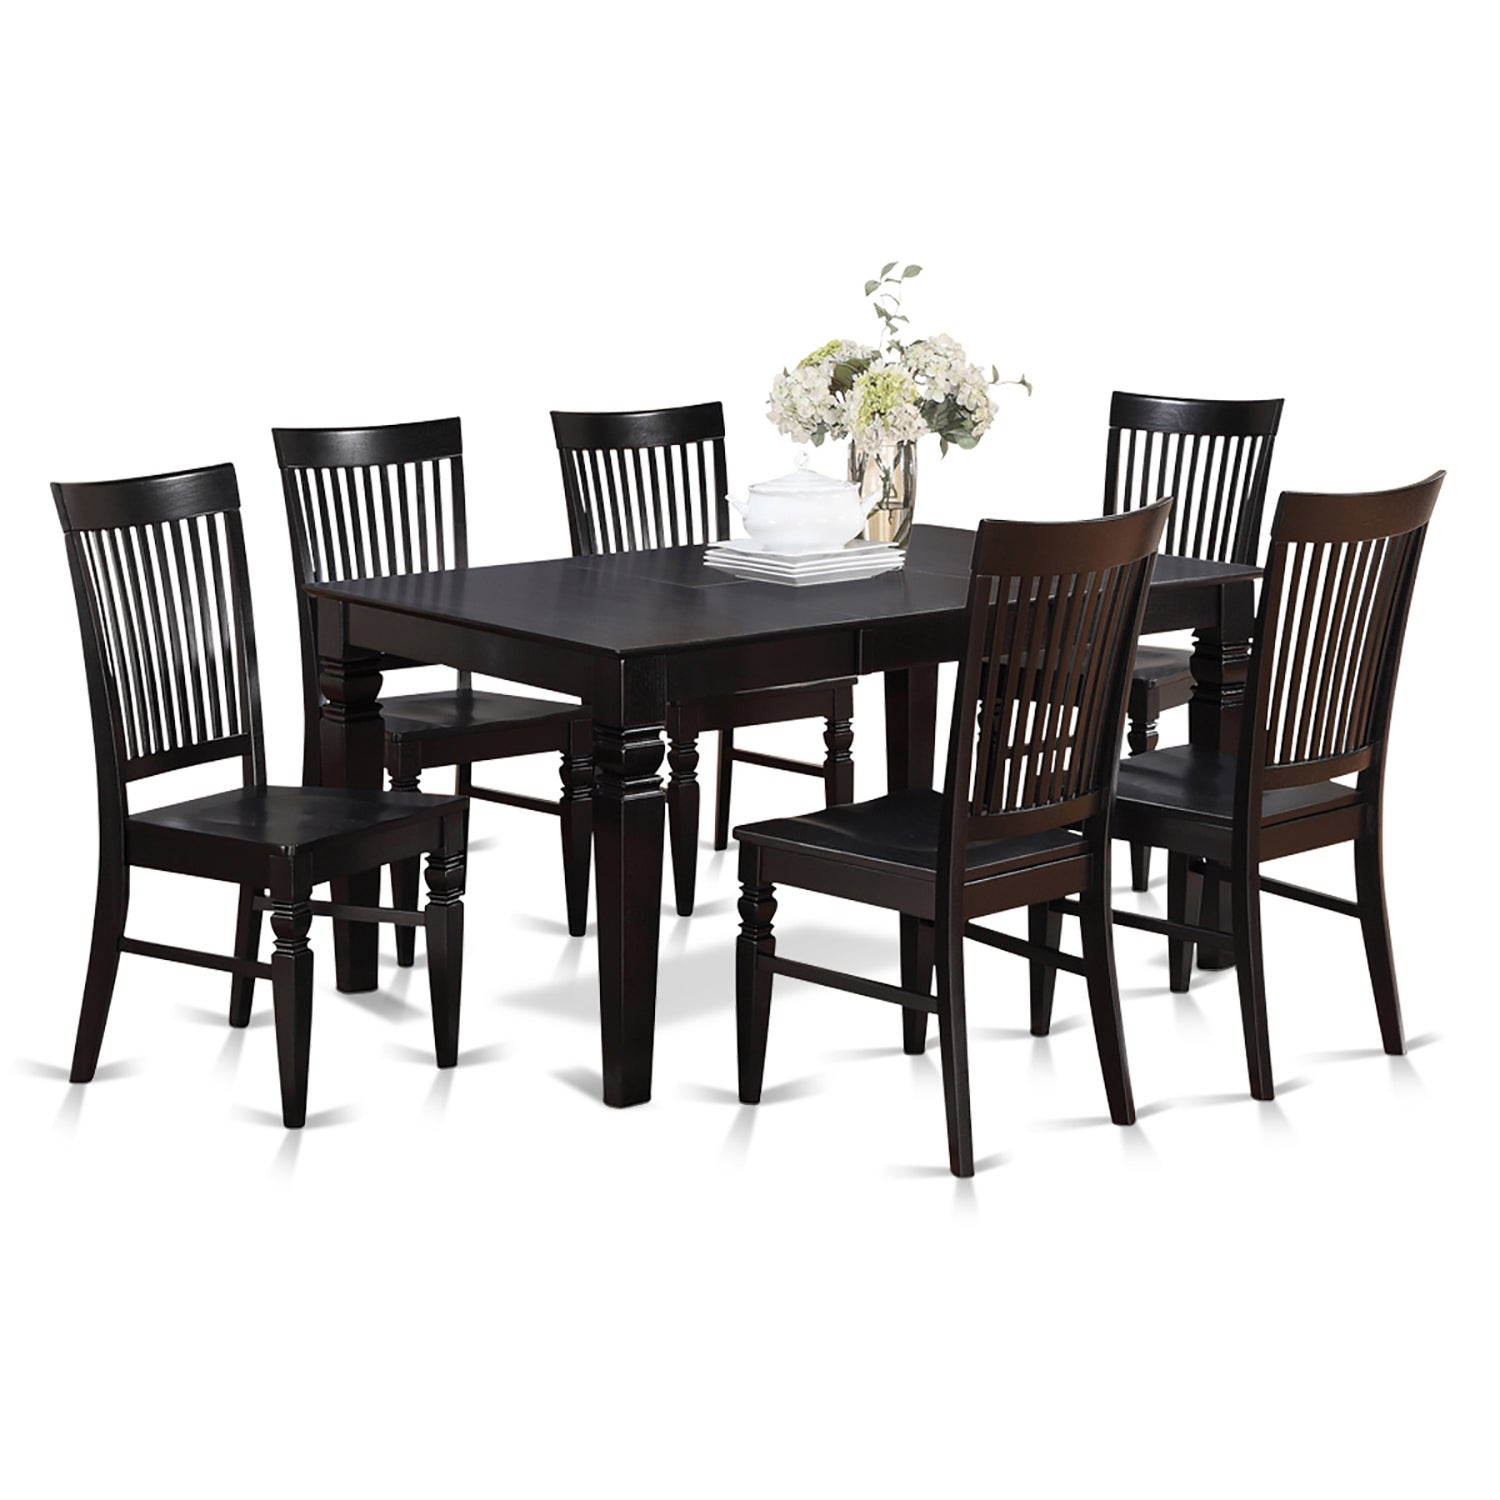 7 Piece Dining Table And 6 Dining Chairs Black